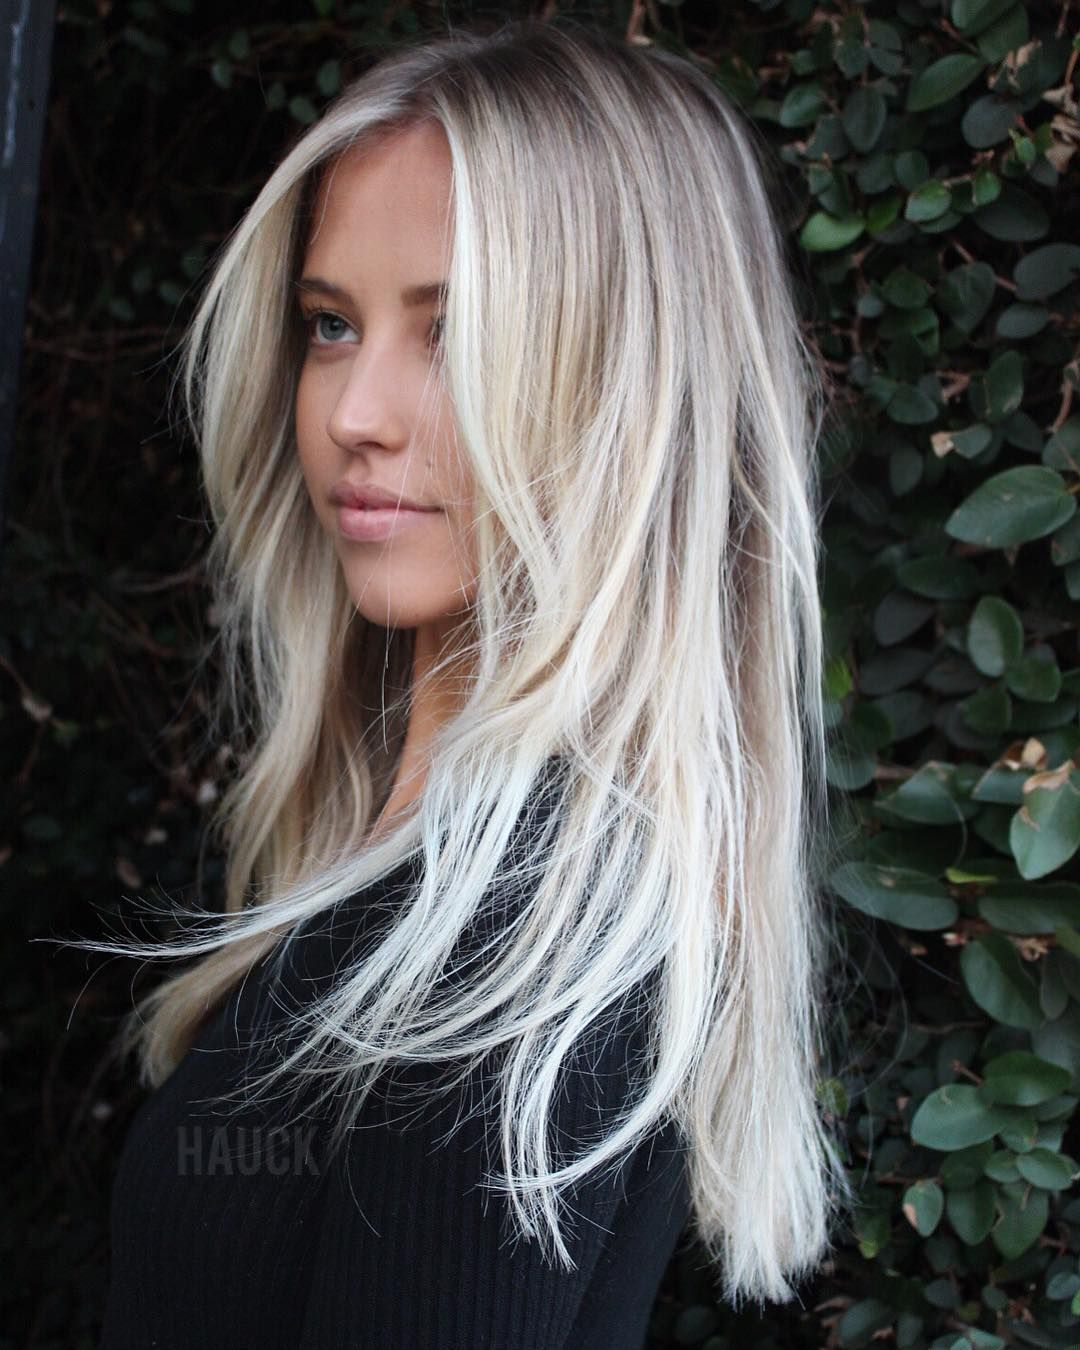 Image may contain: 1 person, closeup and outdoor #platinumblondehighlights